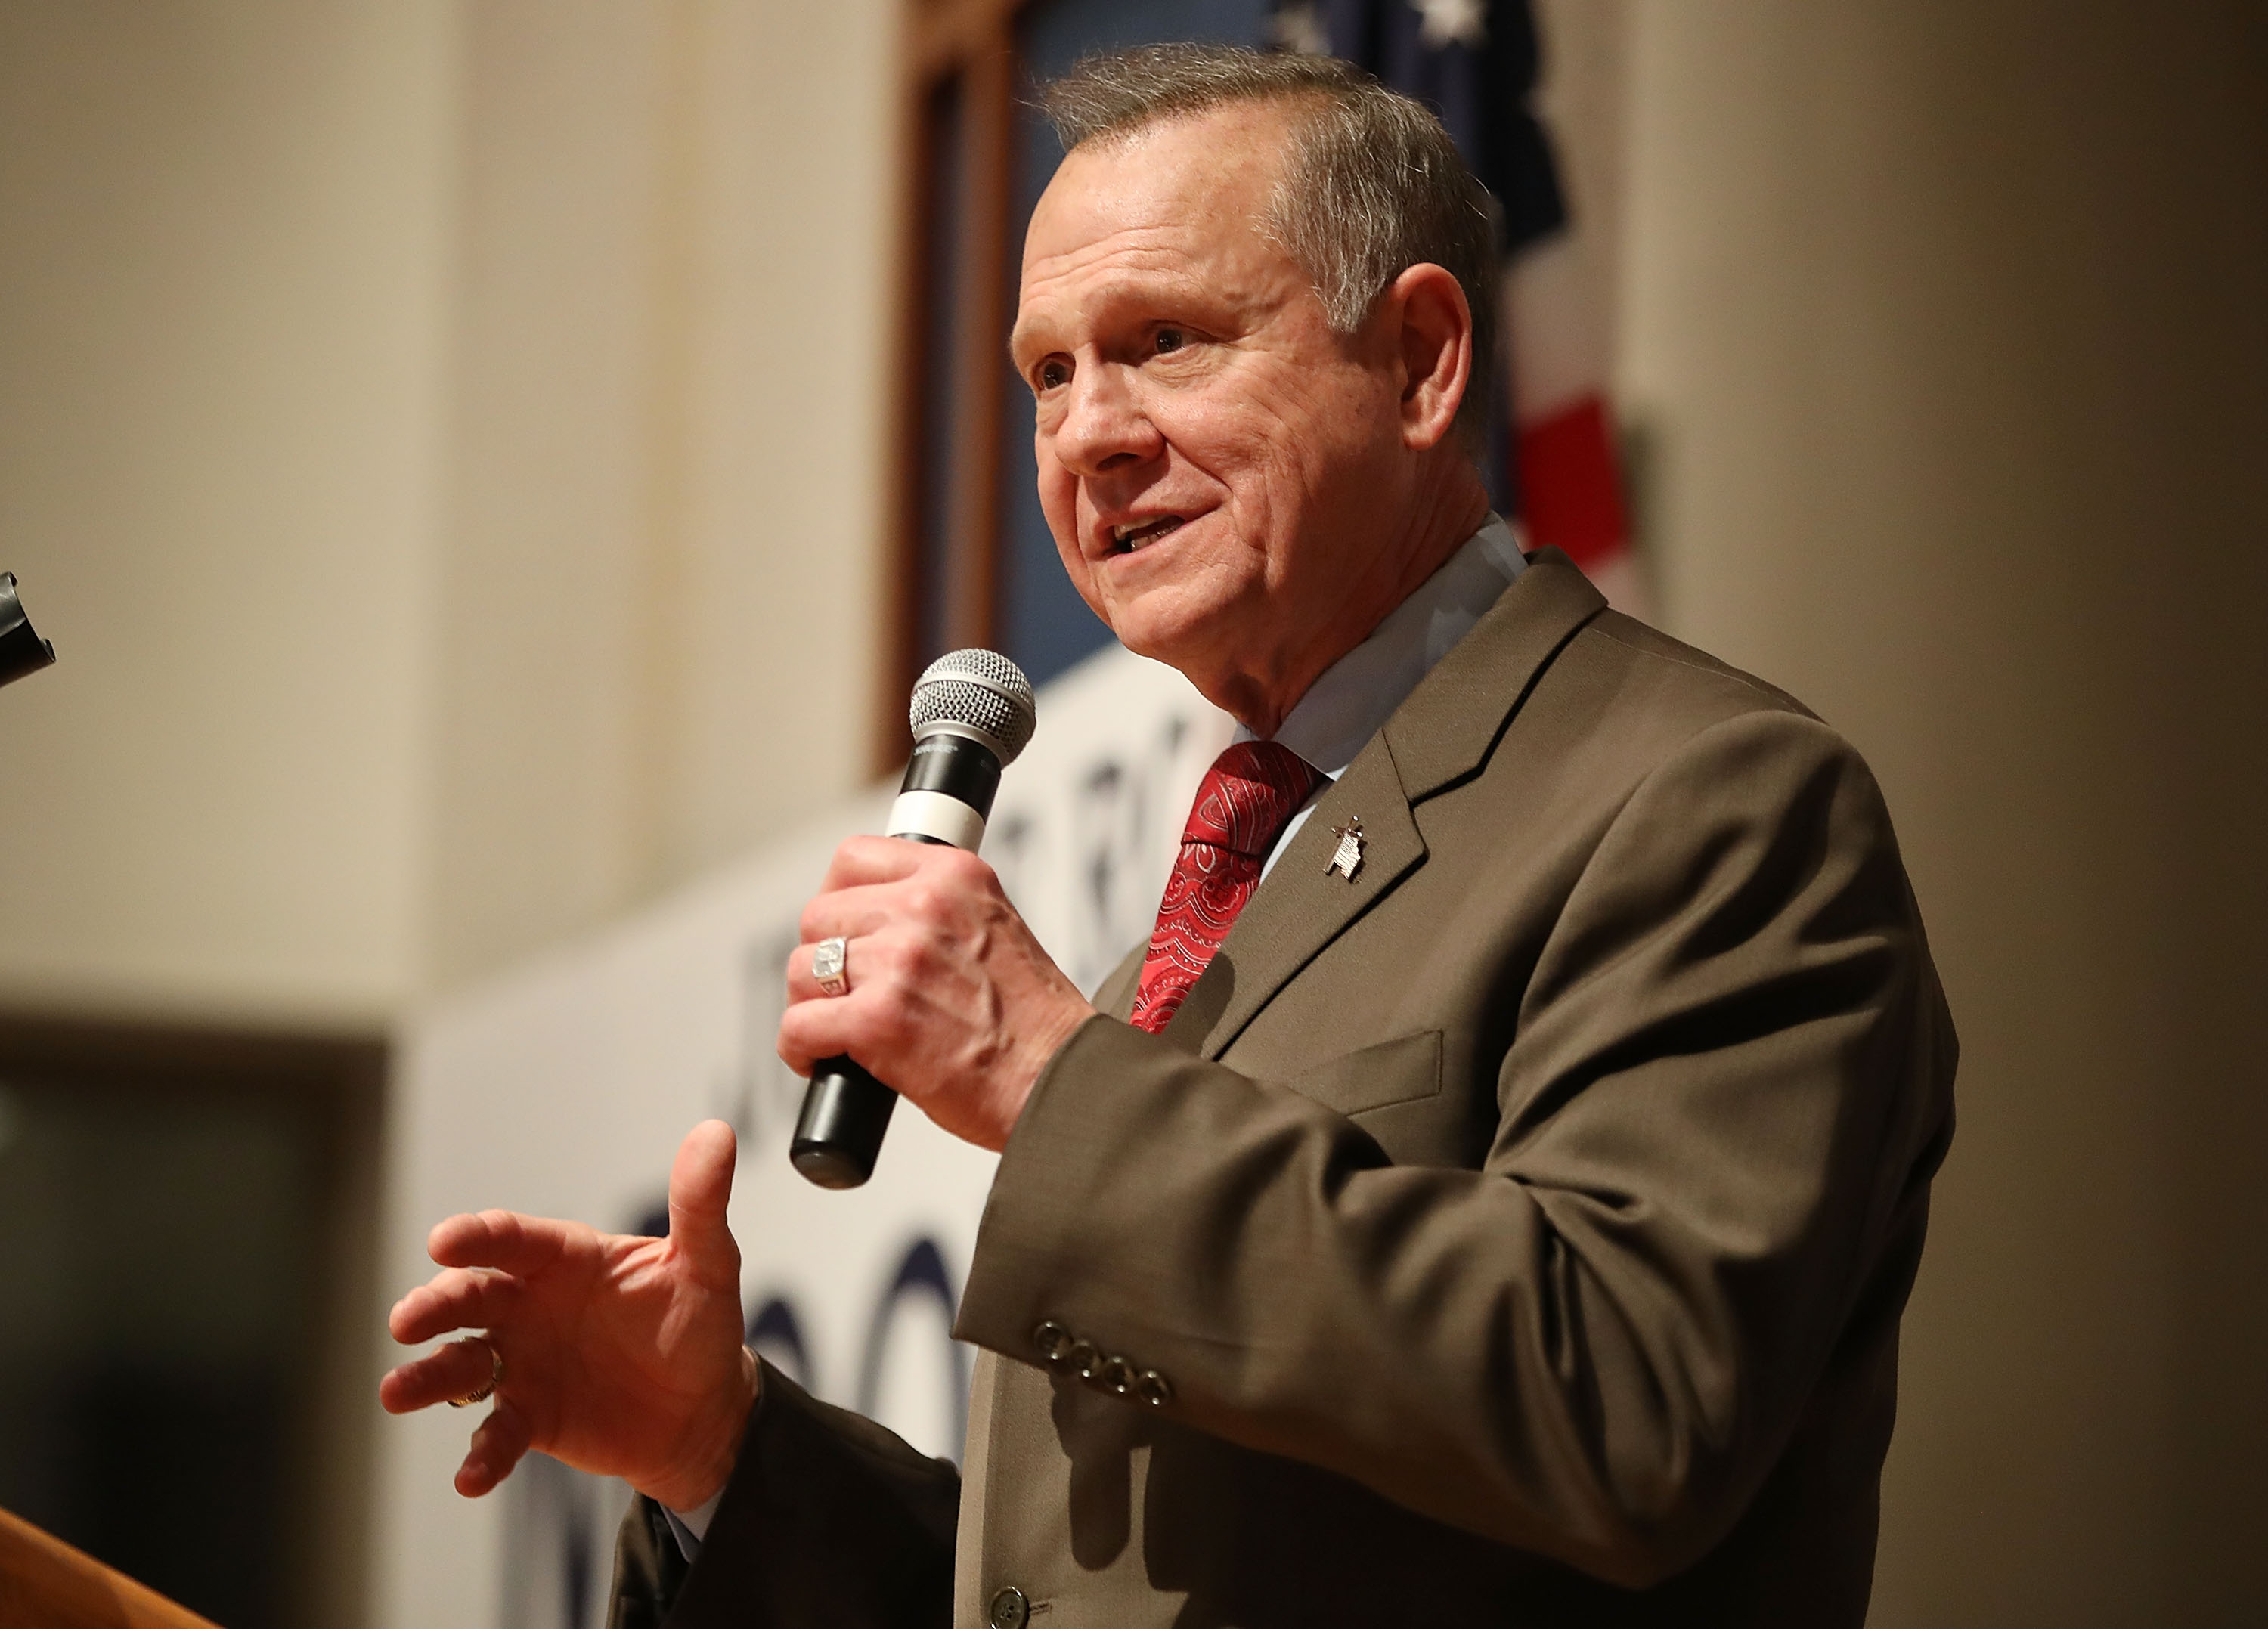 Republican Senatorial candidate Roy Moore speaks about the race against his Democratic opponent Doug Jones is too close and there will be a recount during his election night party in the RSA Activity Center on December 12, 2017 in Montgomery, Alabama.